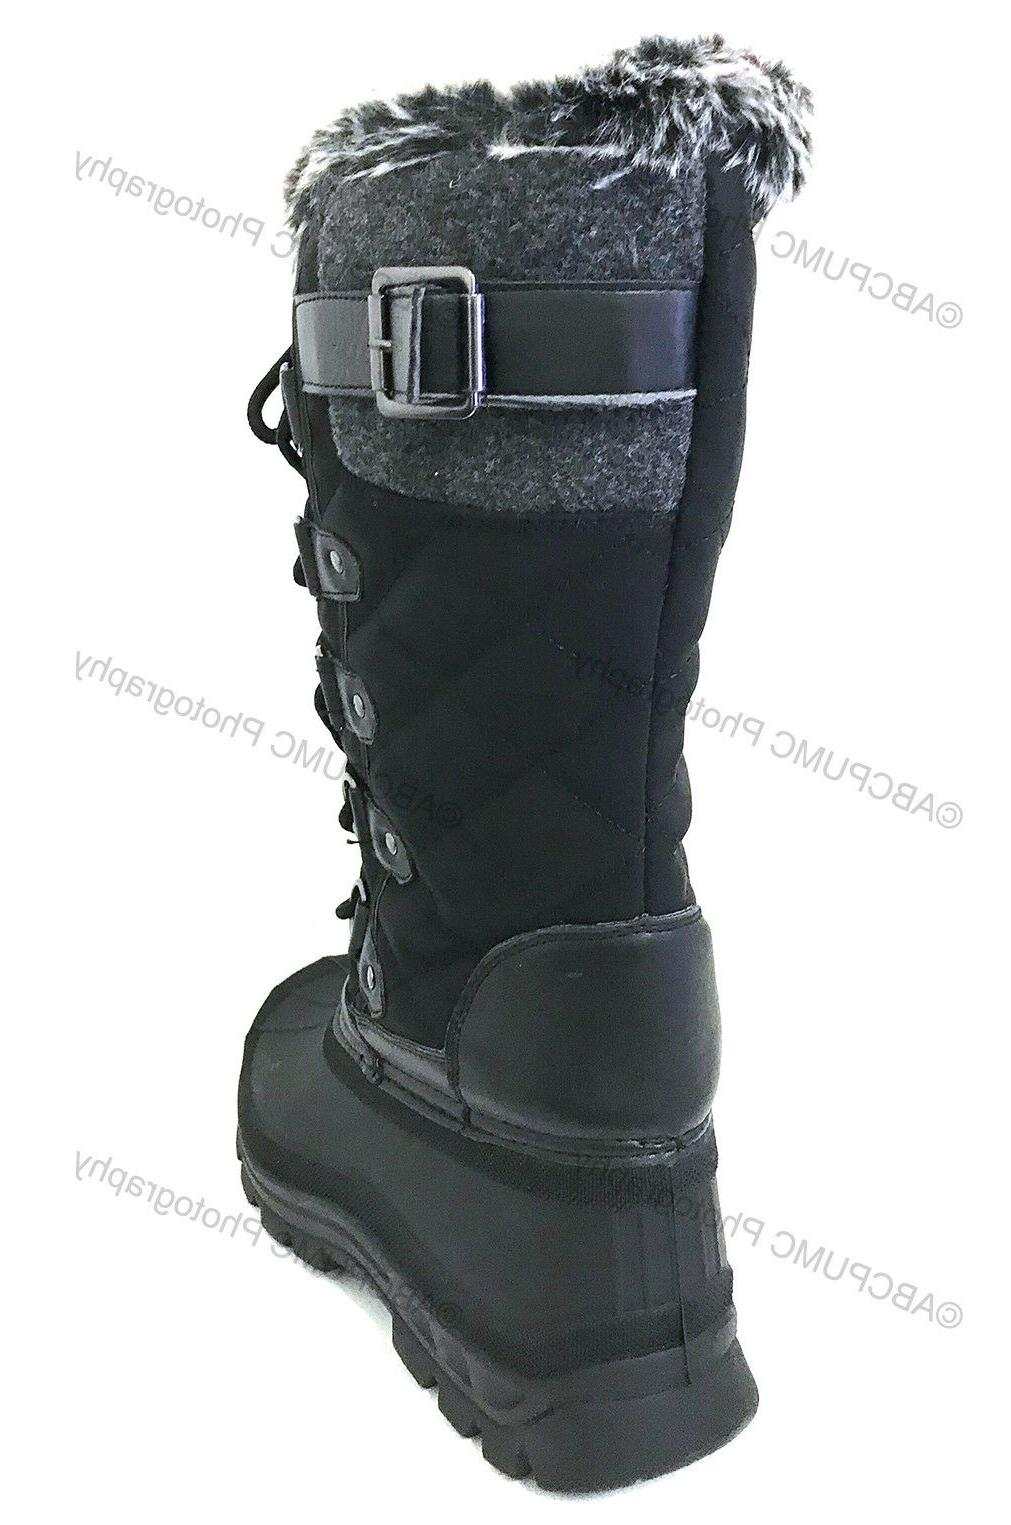 Brand Boots Fur Warm Insulated Snow